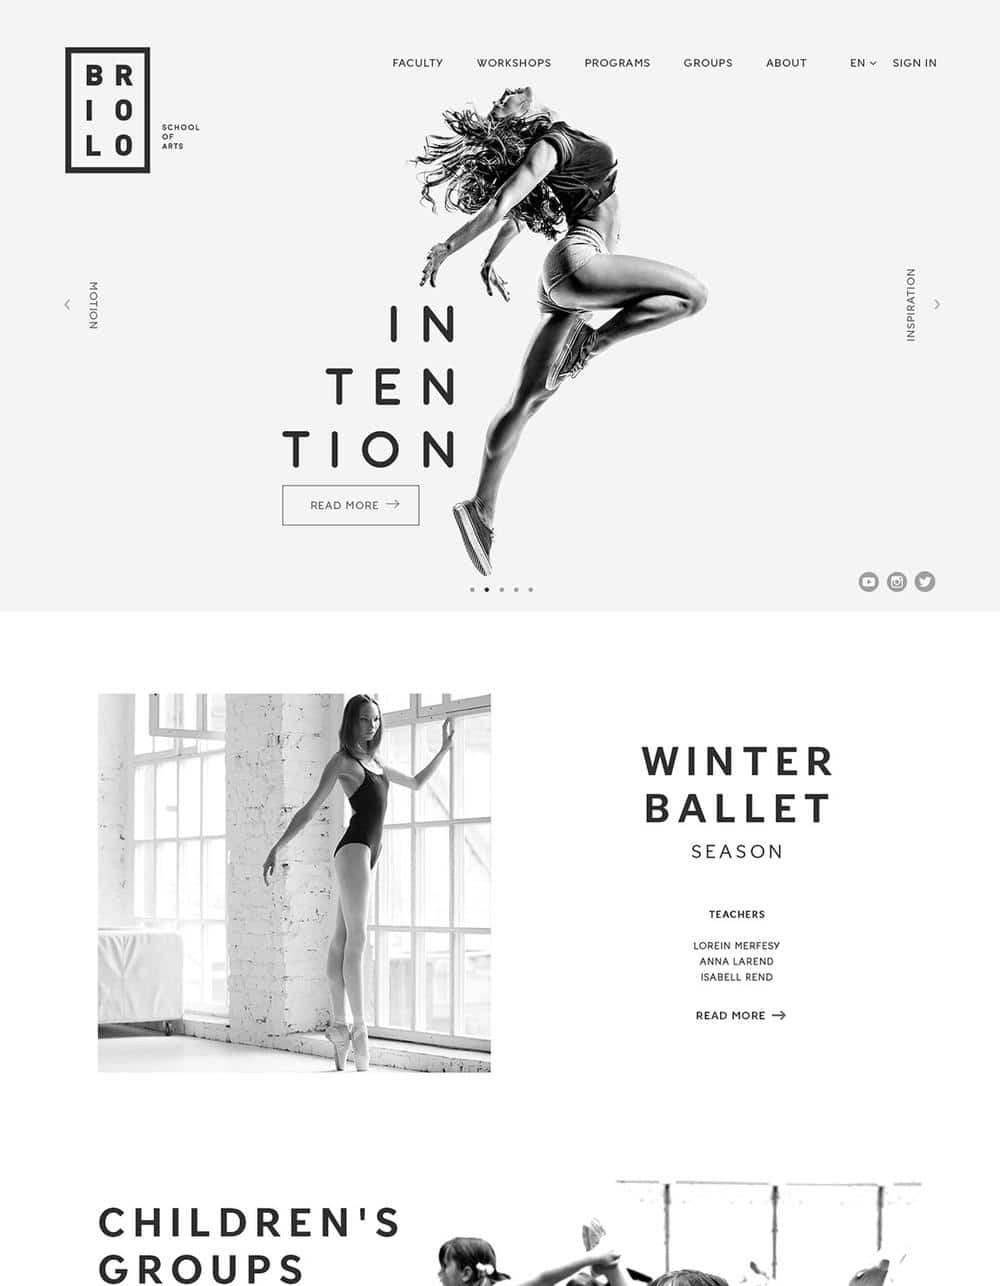 Web Design Inspiration - Black and White and Greyscale designs